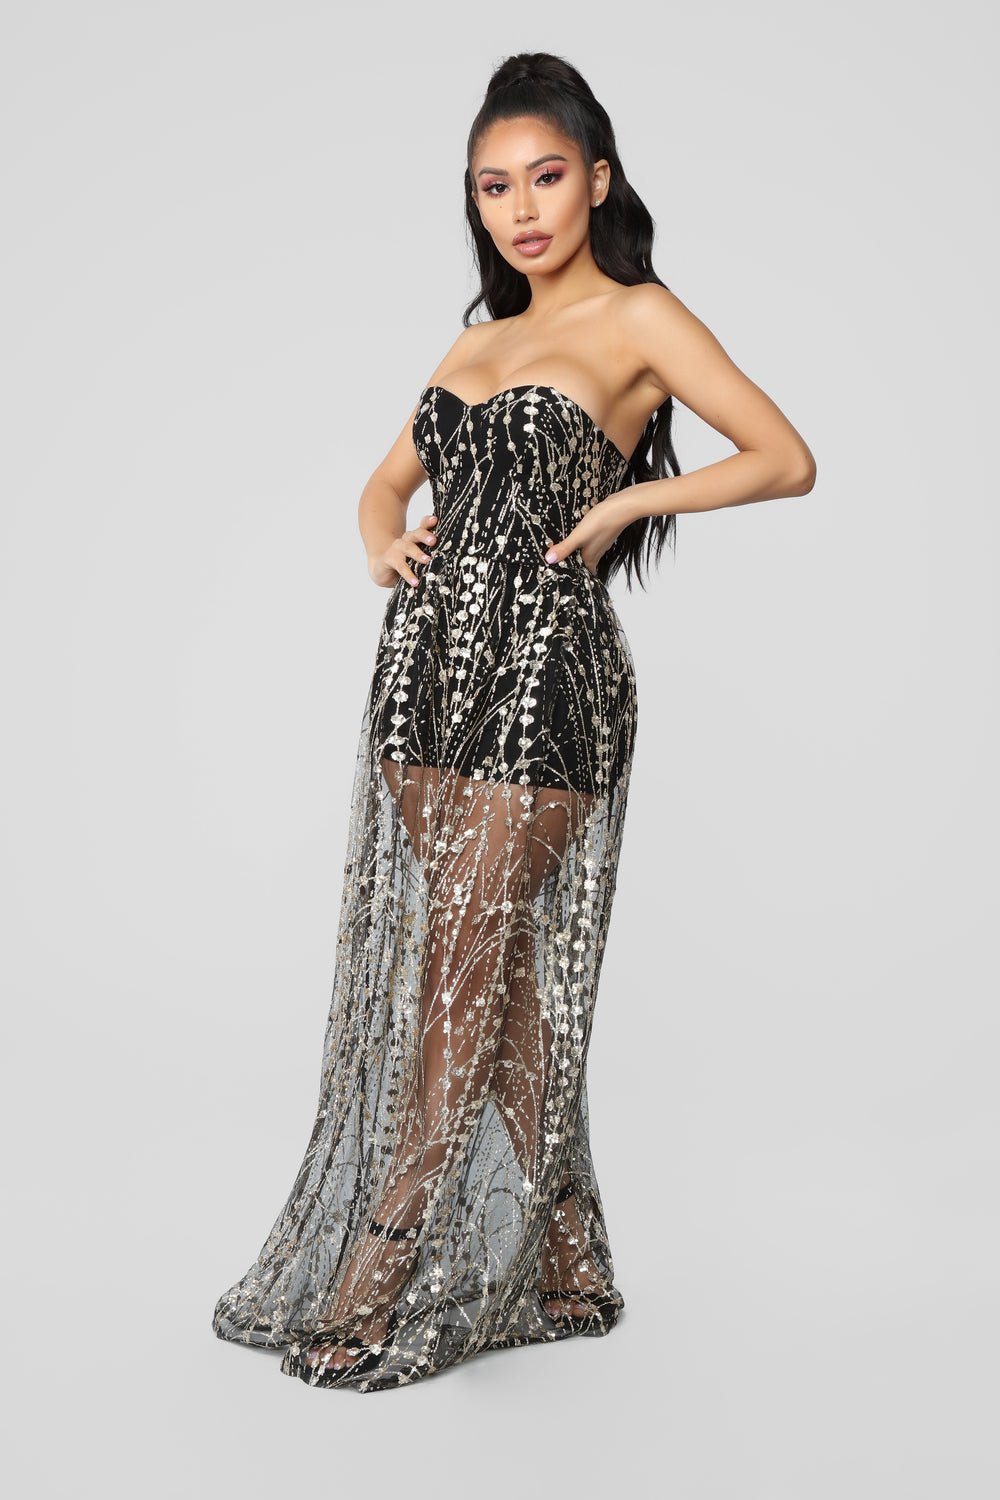 Drippin' In Finesse Sequin Dress -  Black/Gold